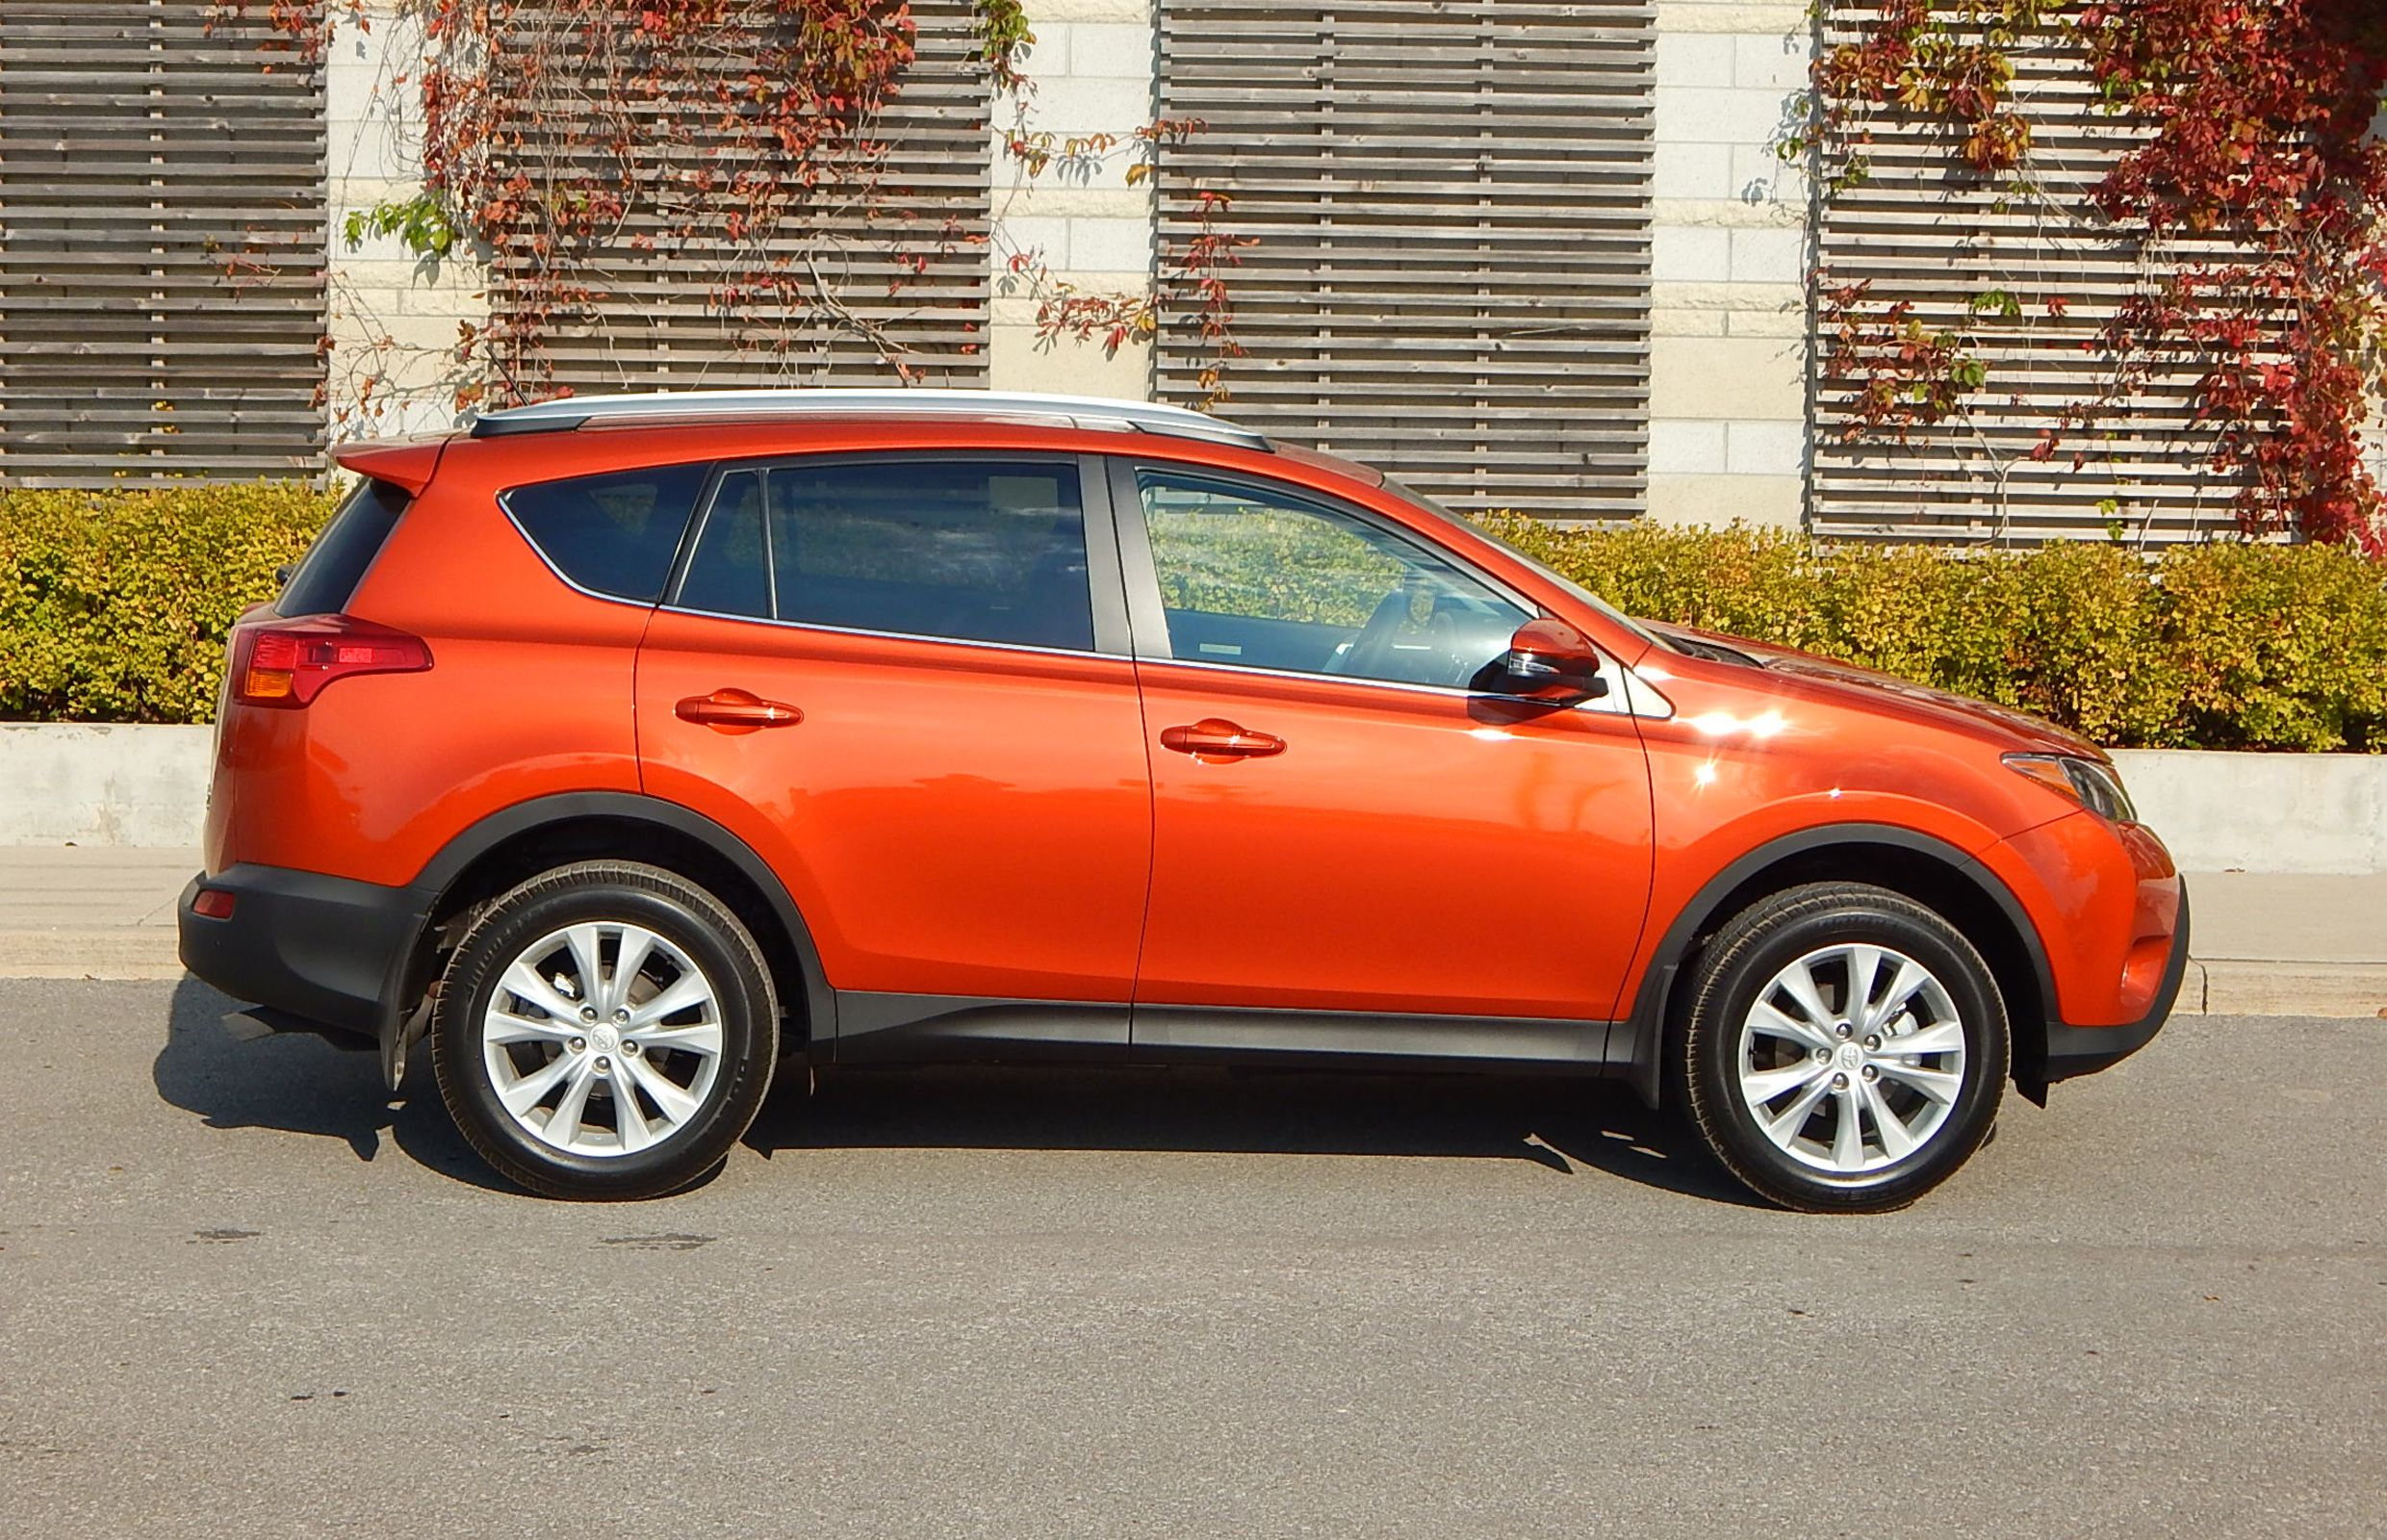 2015 Toyota Rav 4 Inferno Orange | Orange Car Color ...